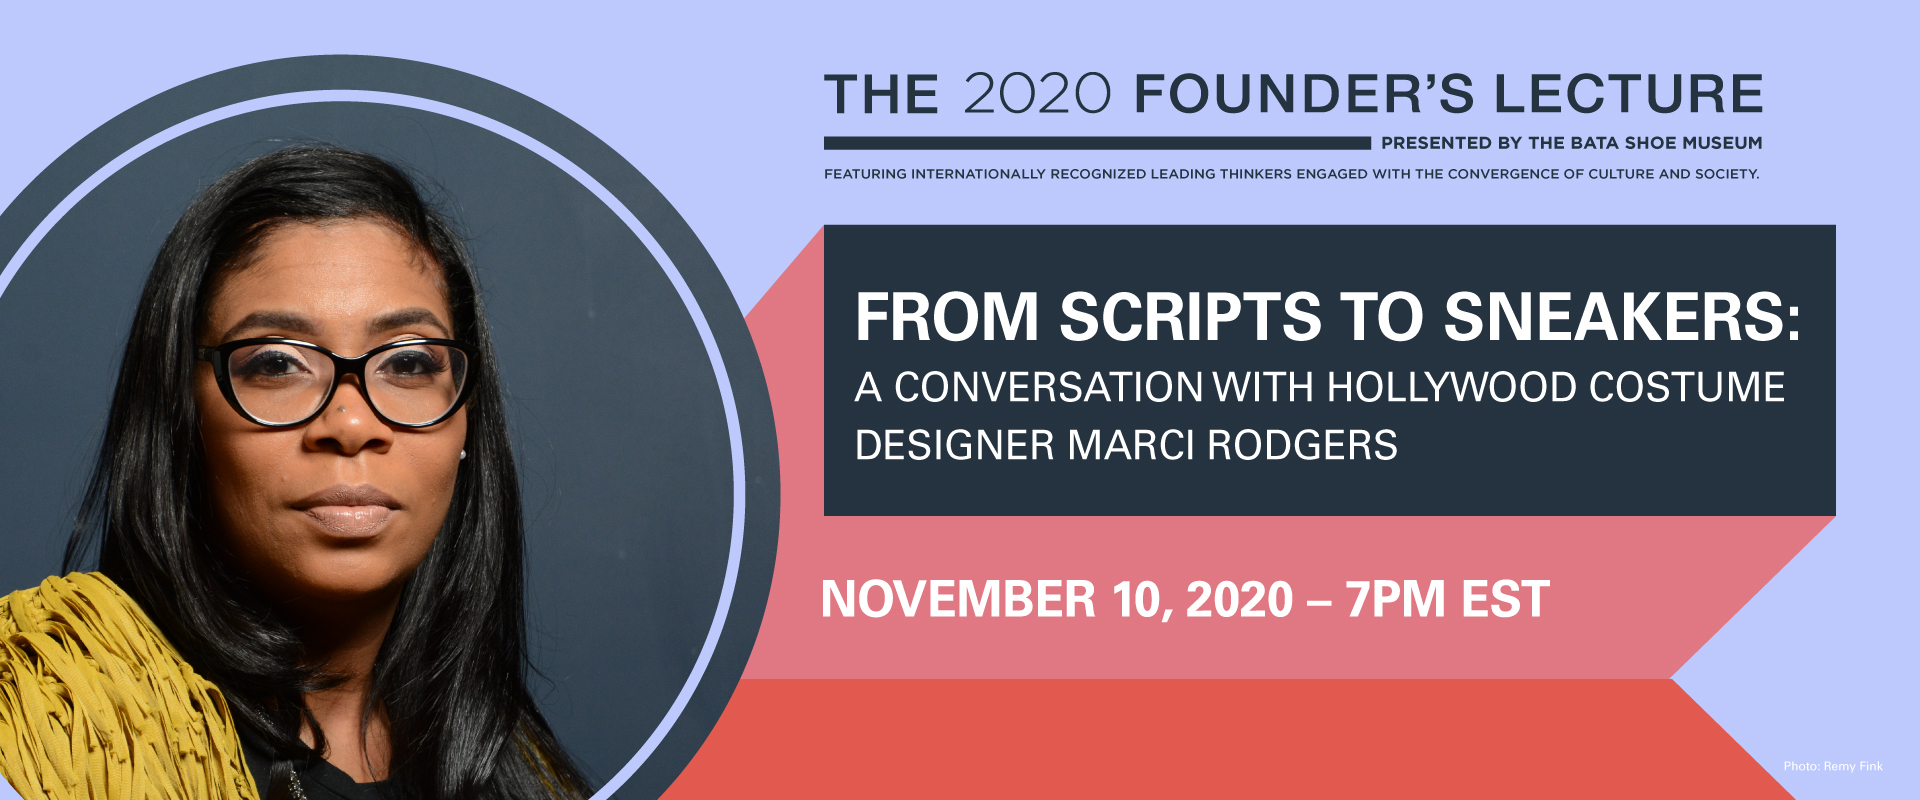 2020 Founder's Lecture